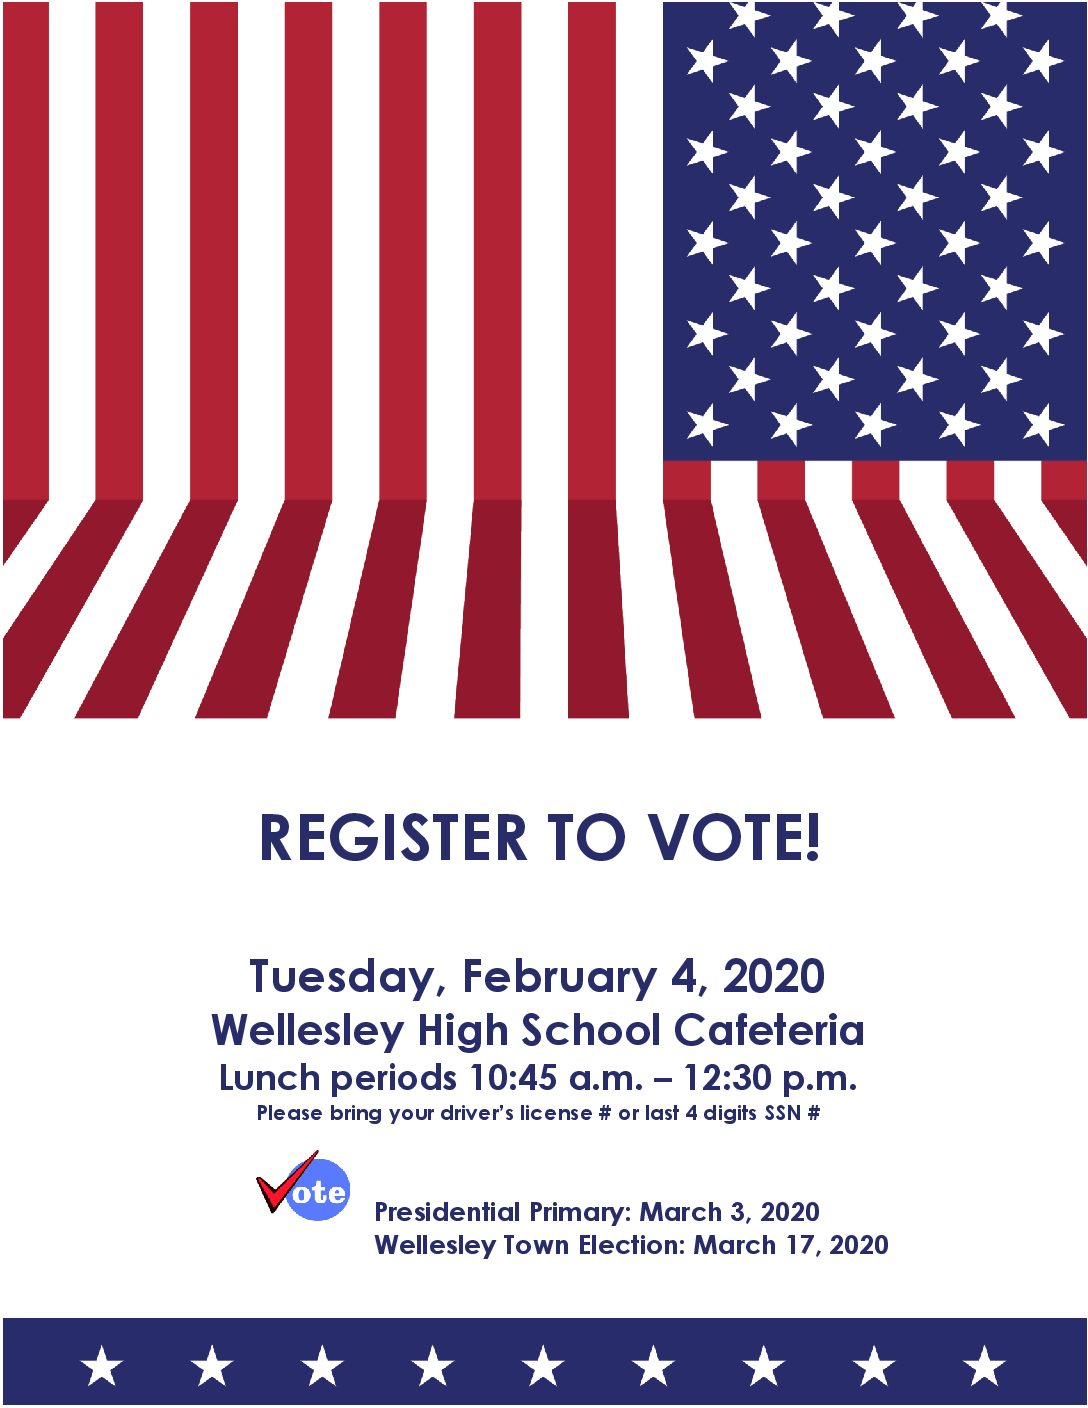 LWV Student Registration Day at WHS – 2/4/20